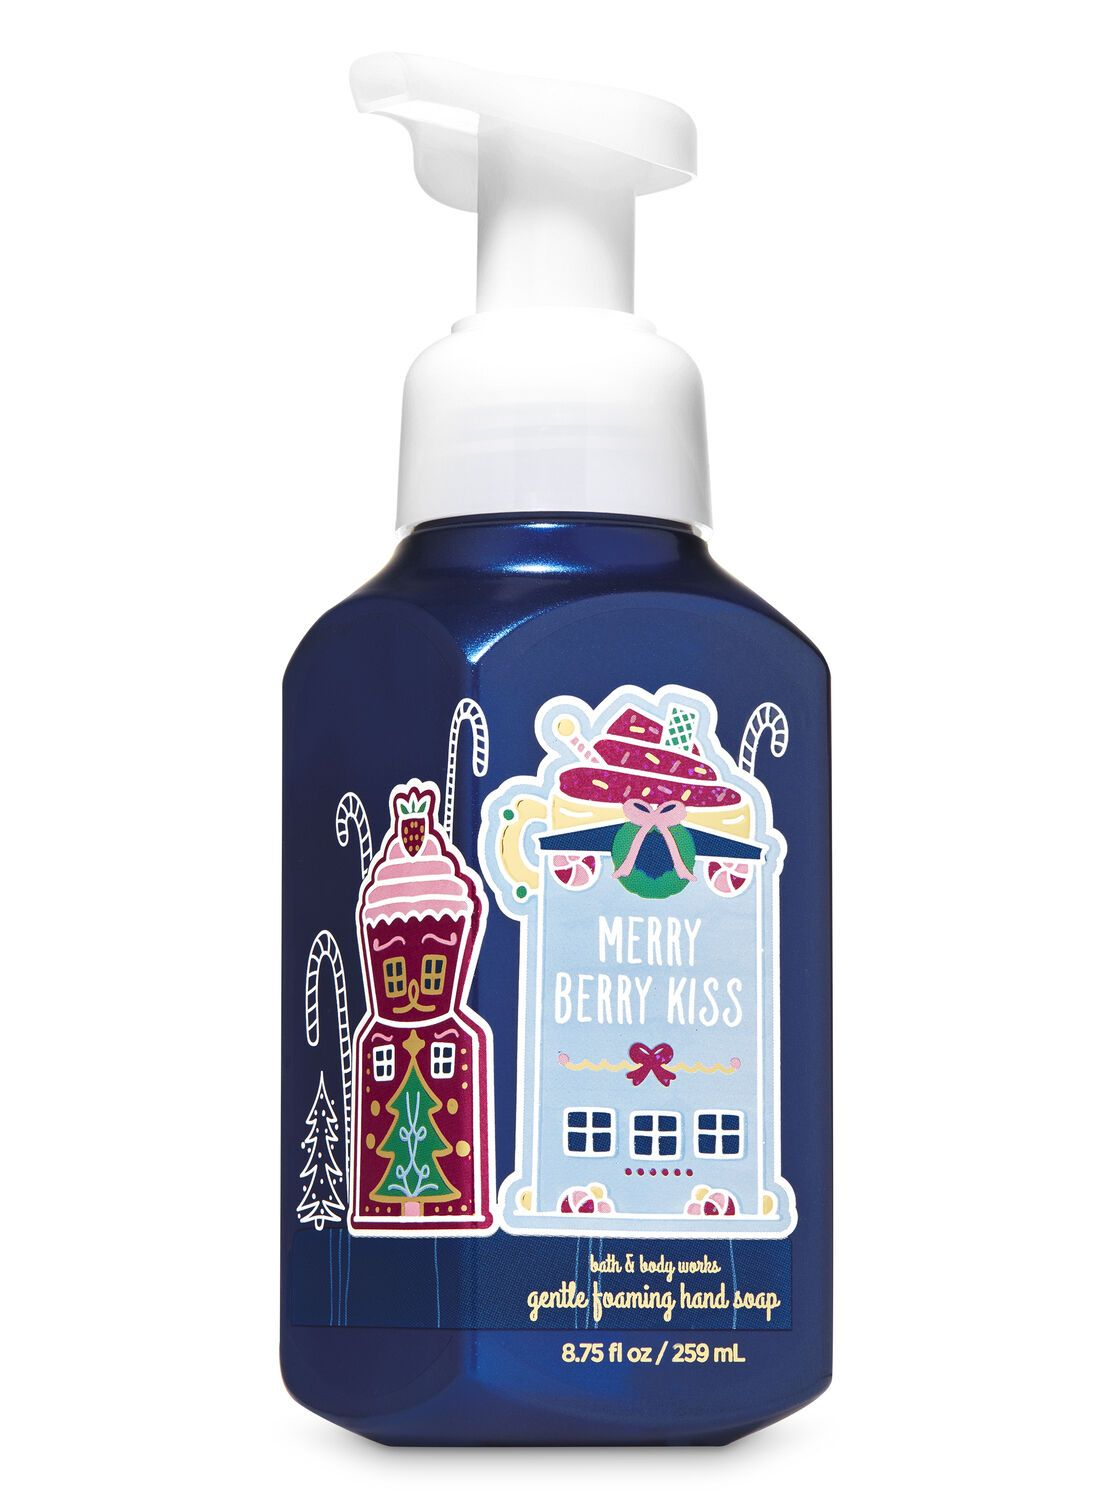 Pin By Ayla Heurich On Foaming Hand Soap Foaming Hand Soap Bath